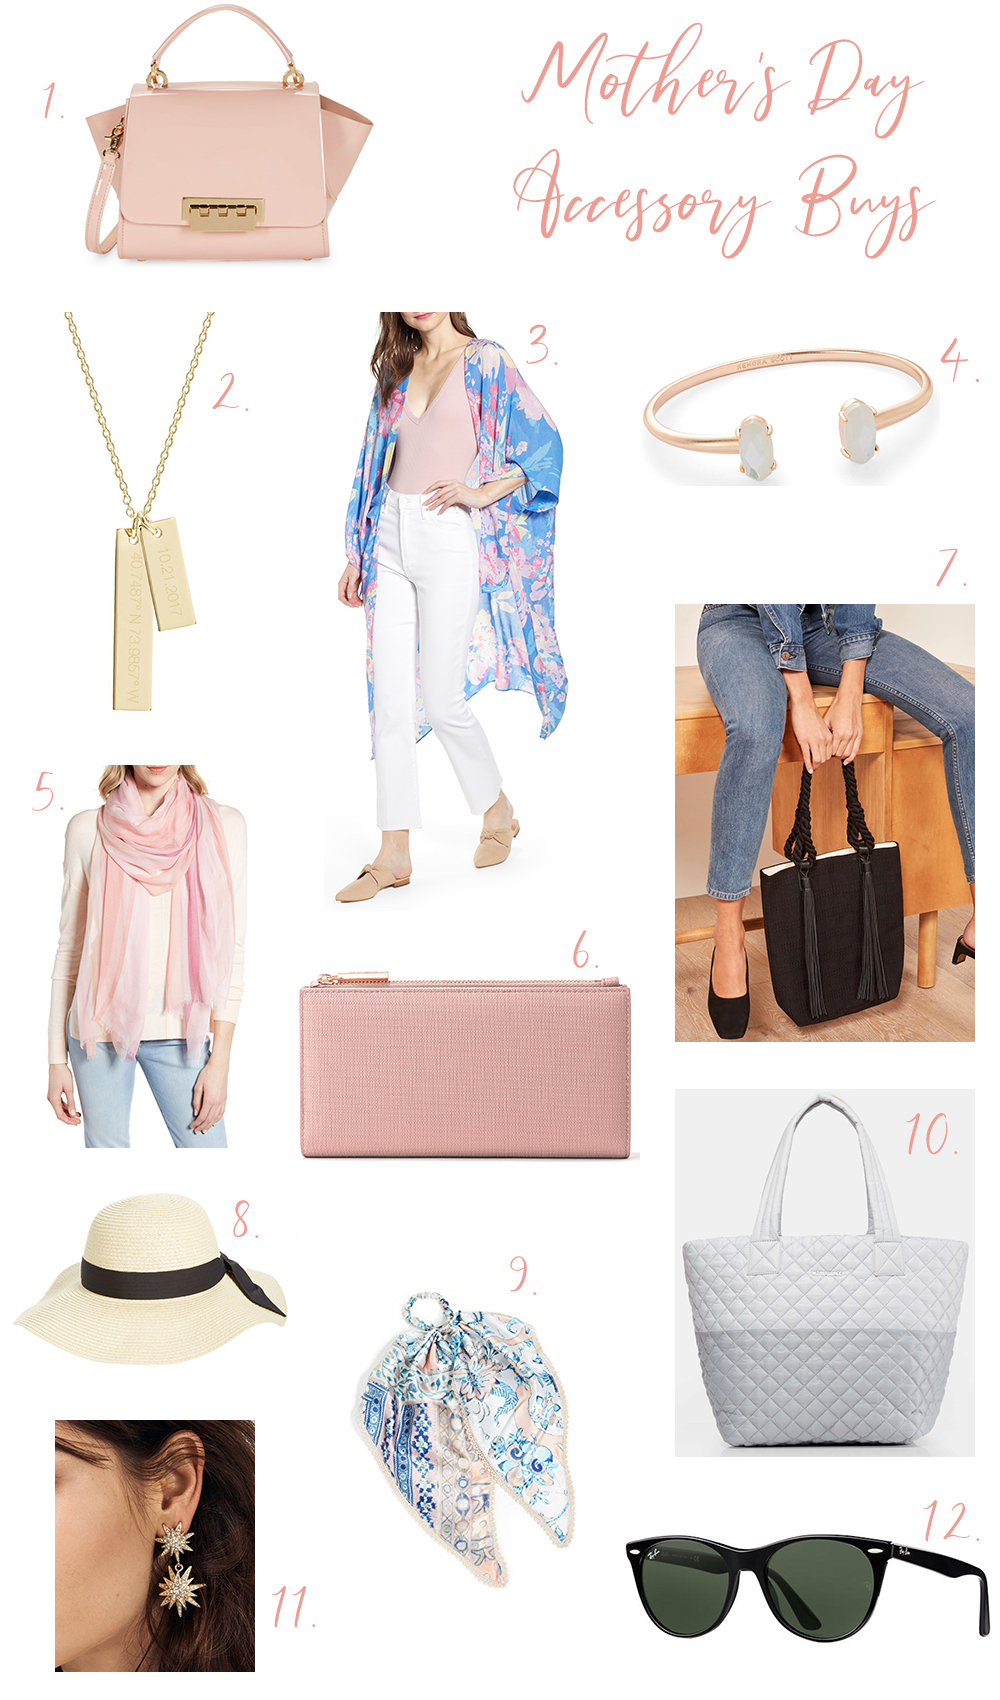 Mother's Day Gifts - The Best Guide of 2019! Everything from home decor, cozy gifts, fashion & accessories, to beauty.. we linked something for everyone! | Kristy Wicks